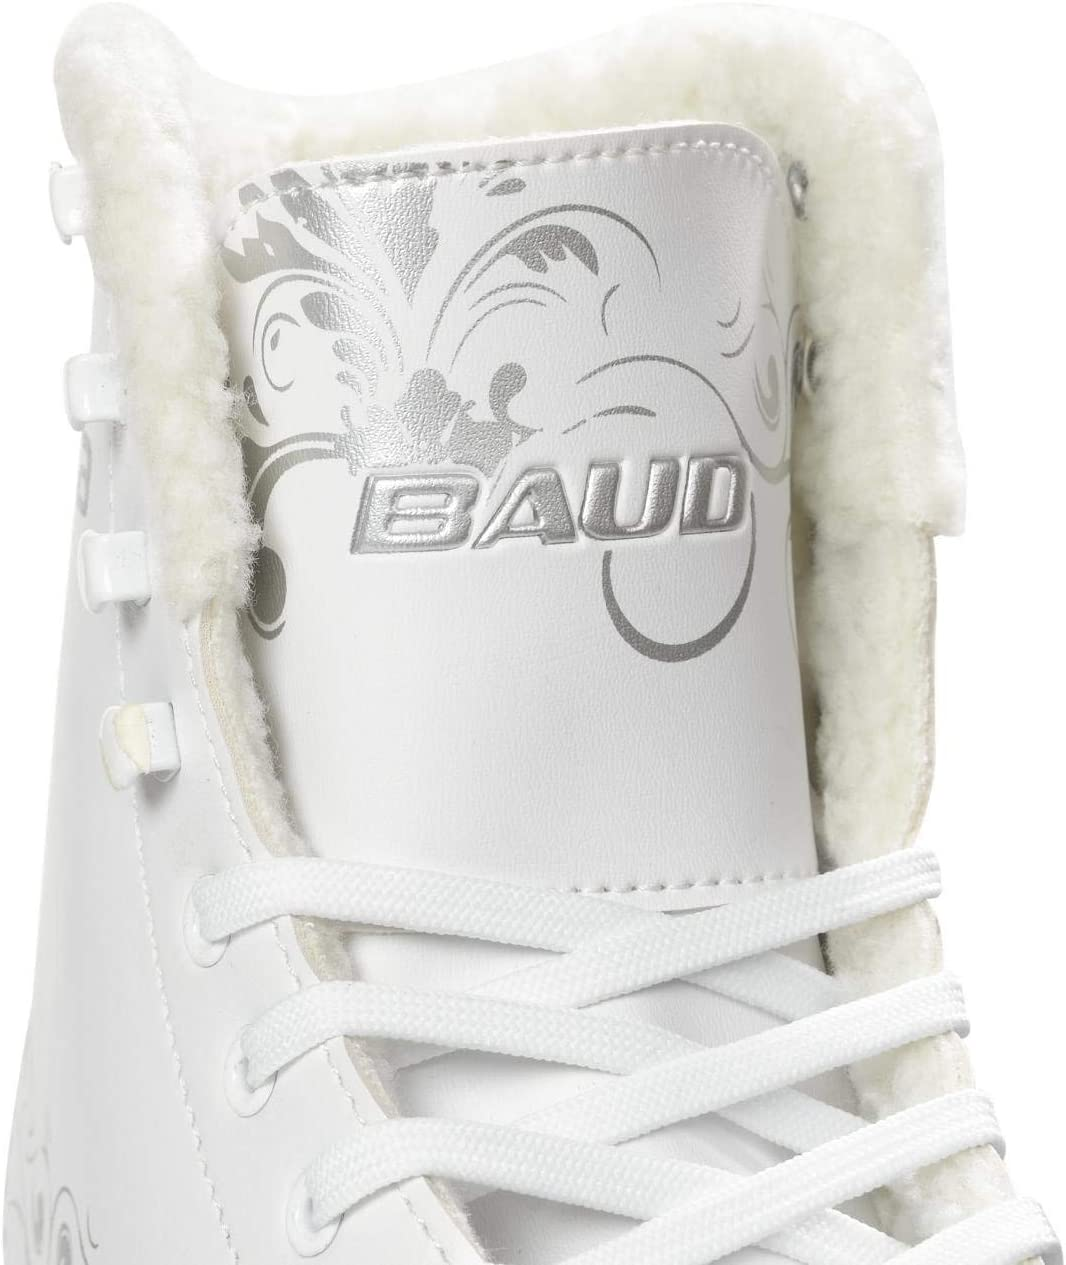 MTP-Racing Ice Skates Womens Baud Lined Size 30-41